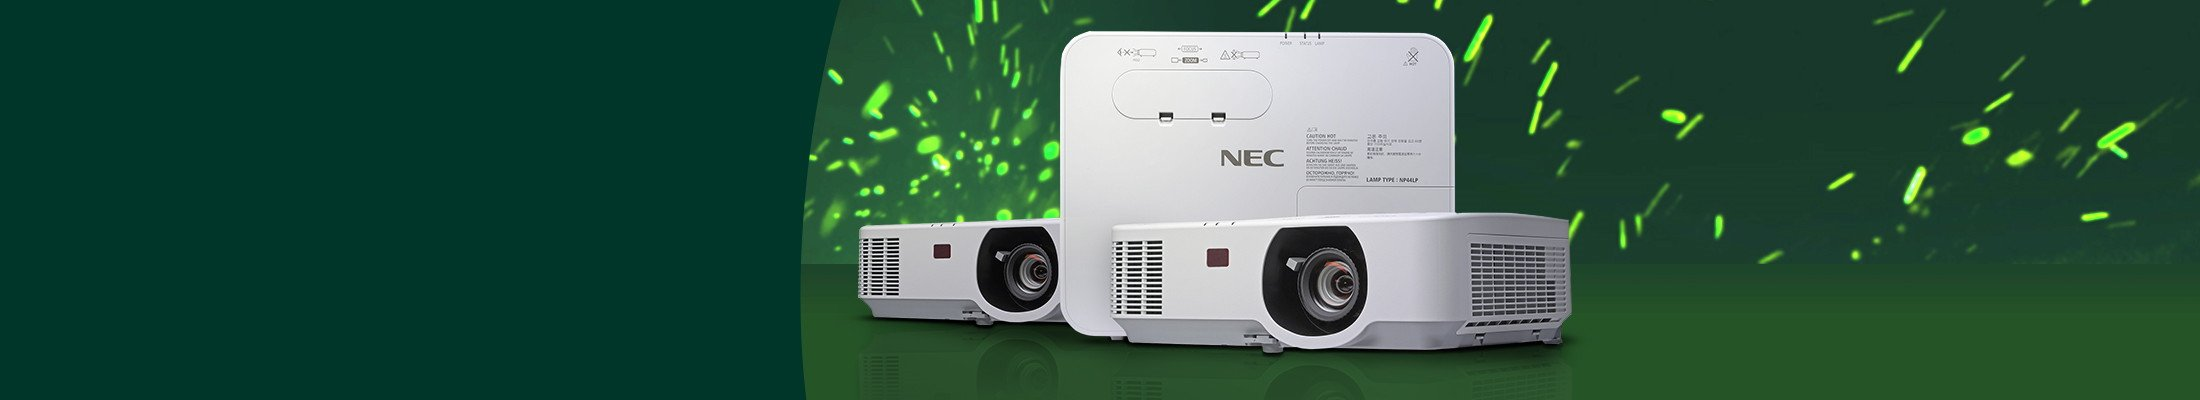 P-Series-Projectors-HeroImageLPLarge